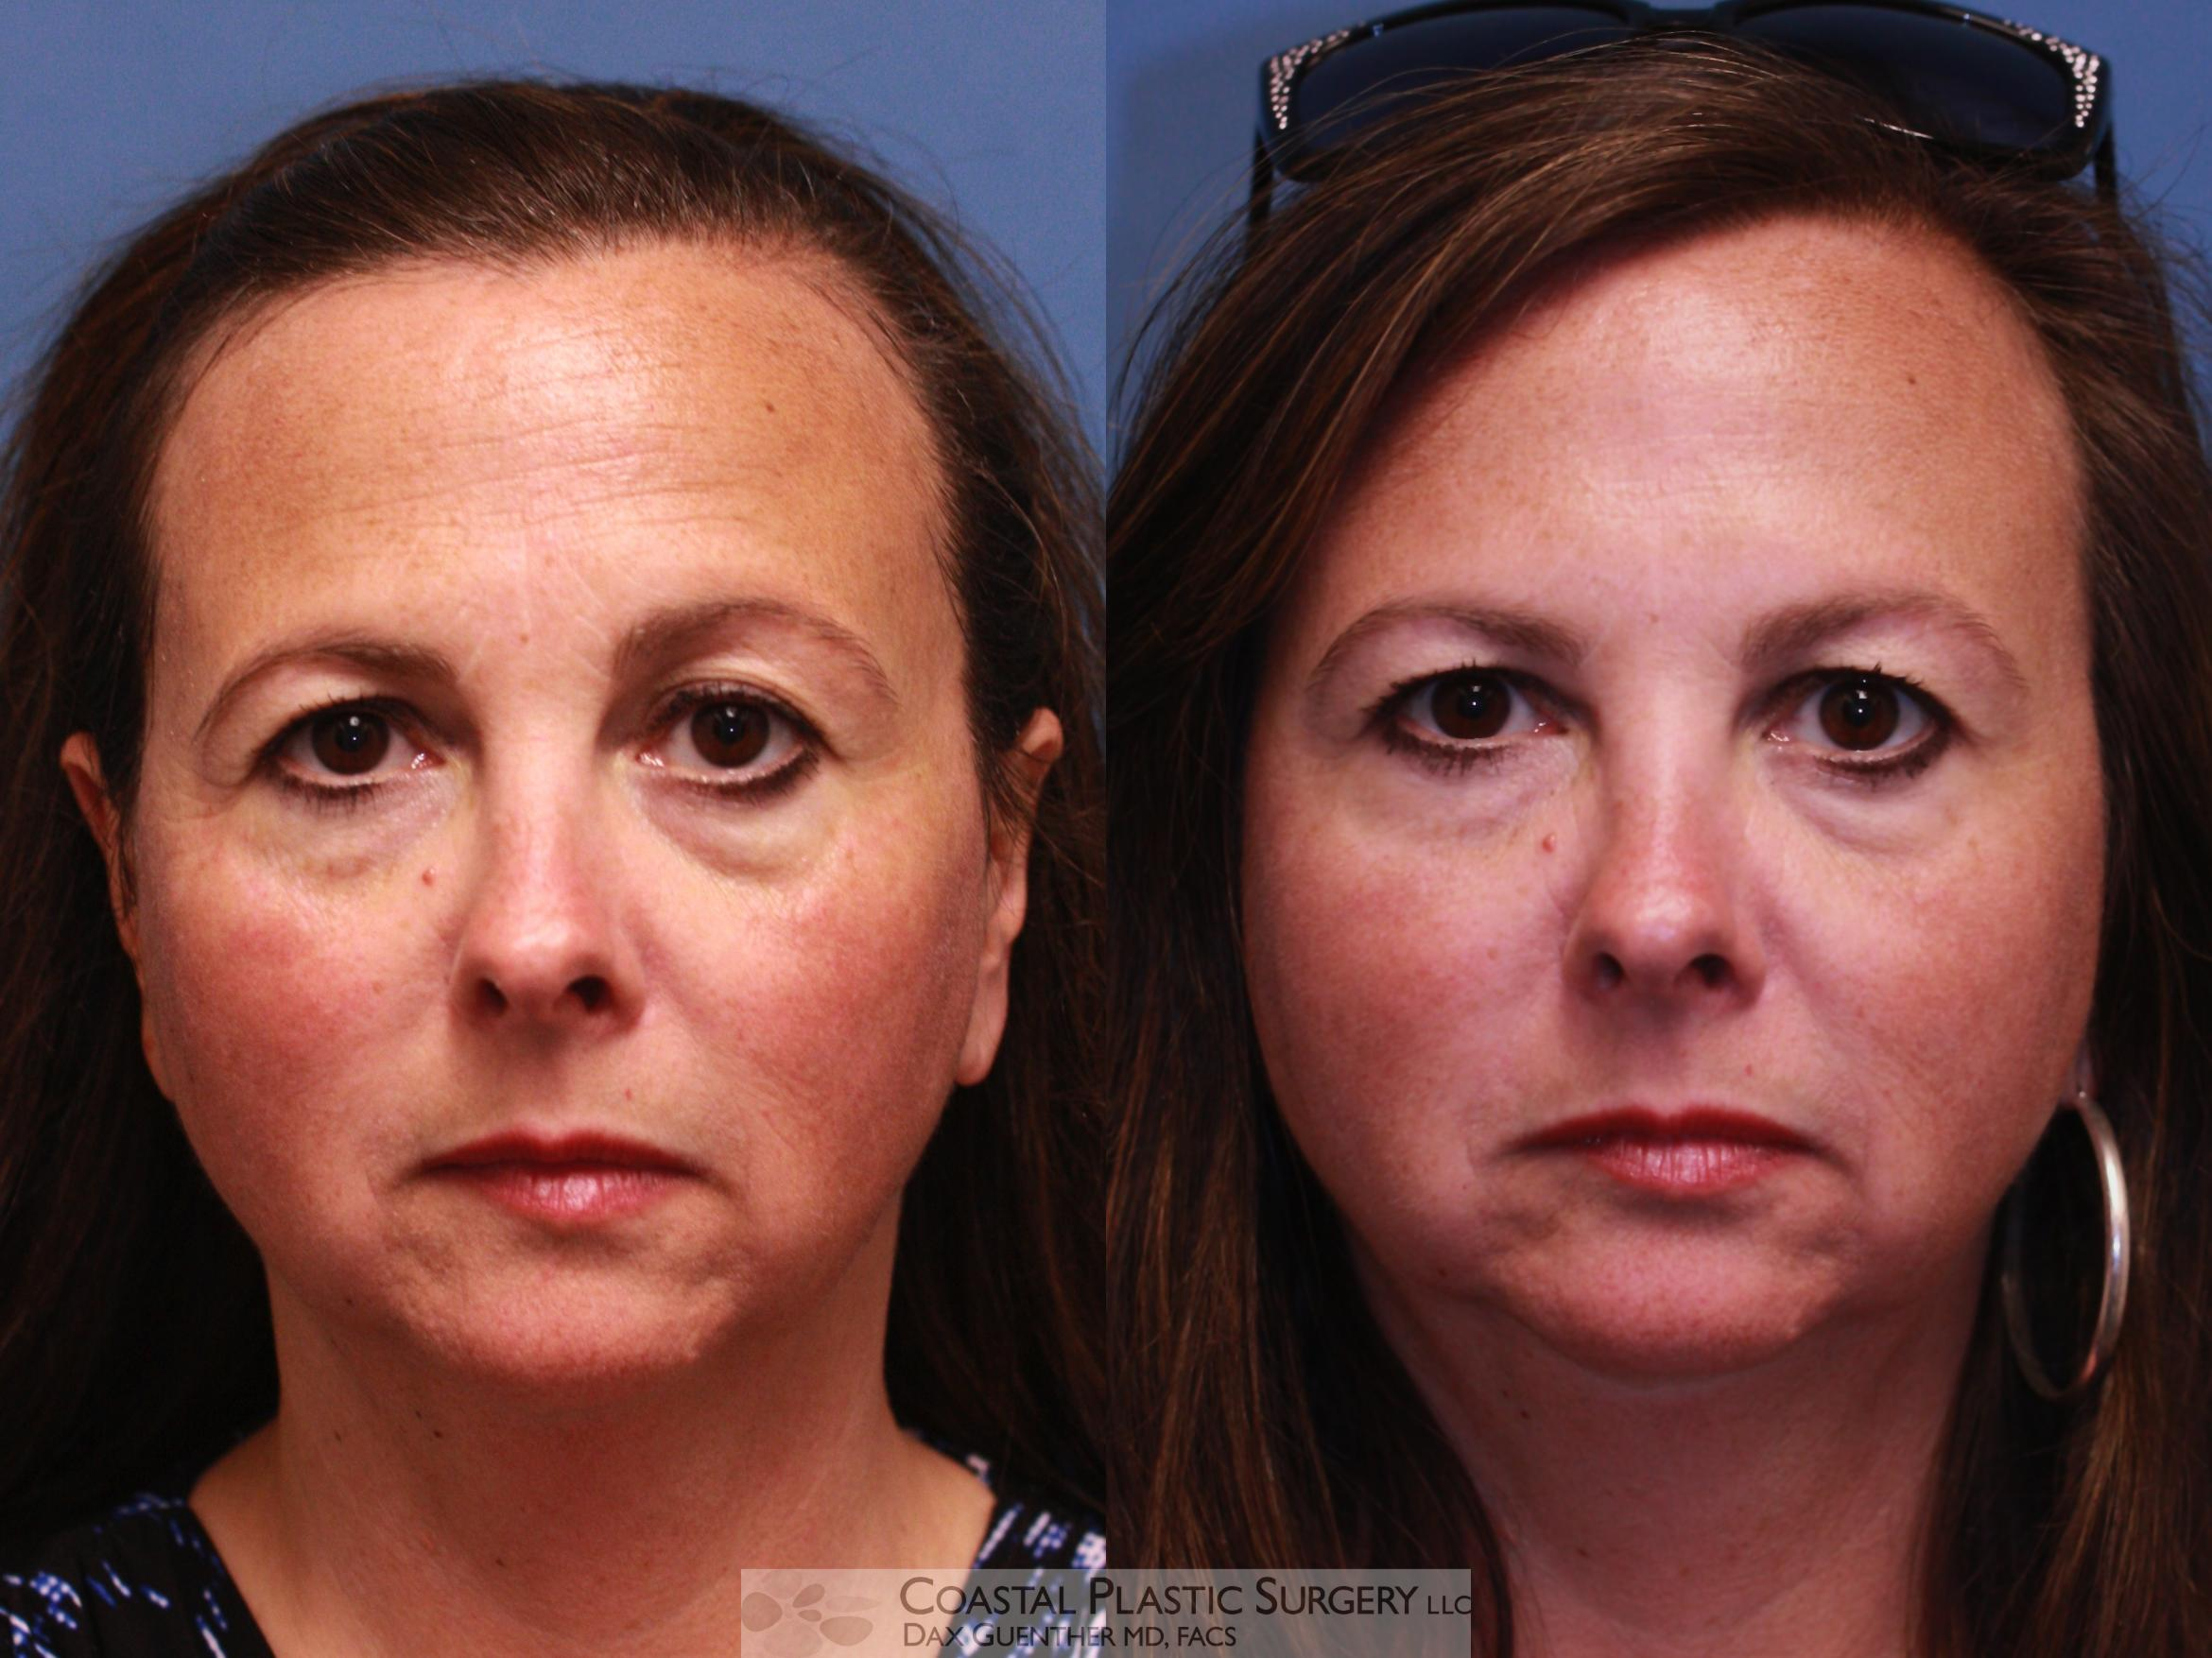 Botox & Dysport Before & After Photo | Hingham, Boston & Nantucket, MA | Dax Guenther, MD: Coastal Plastic Surgery